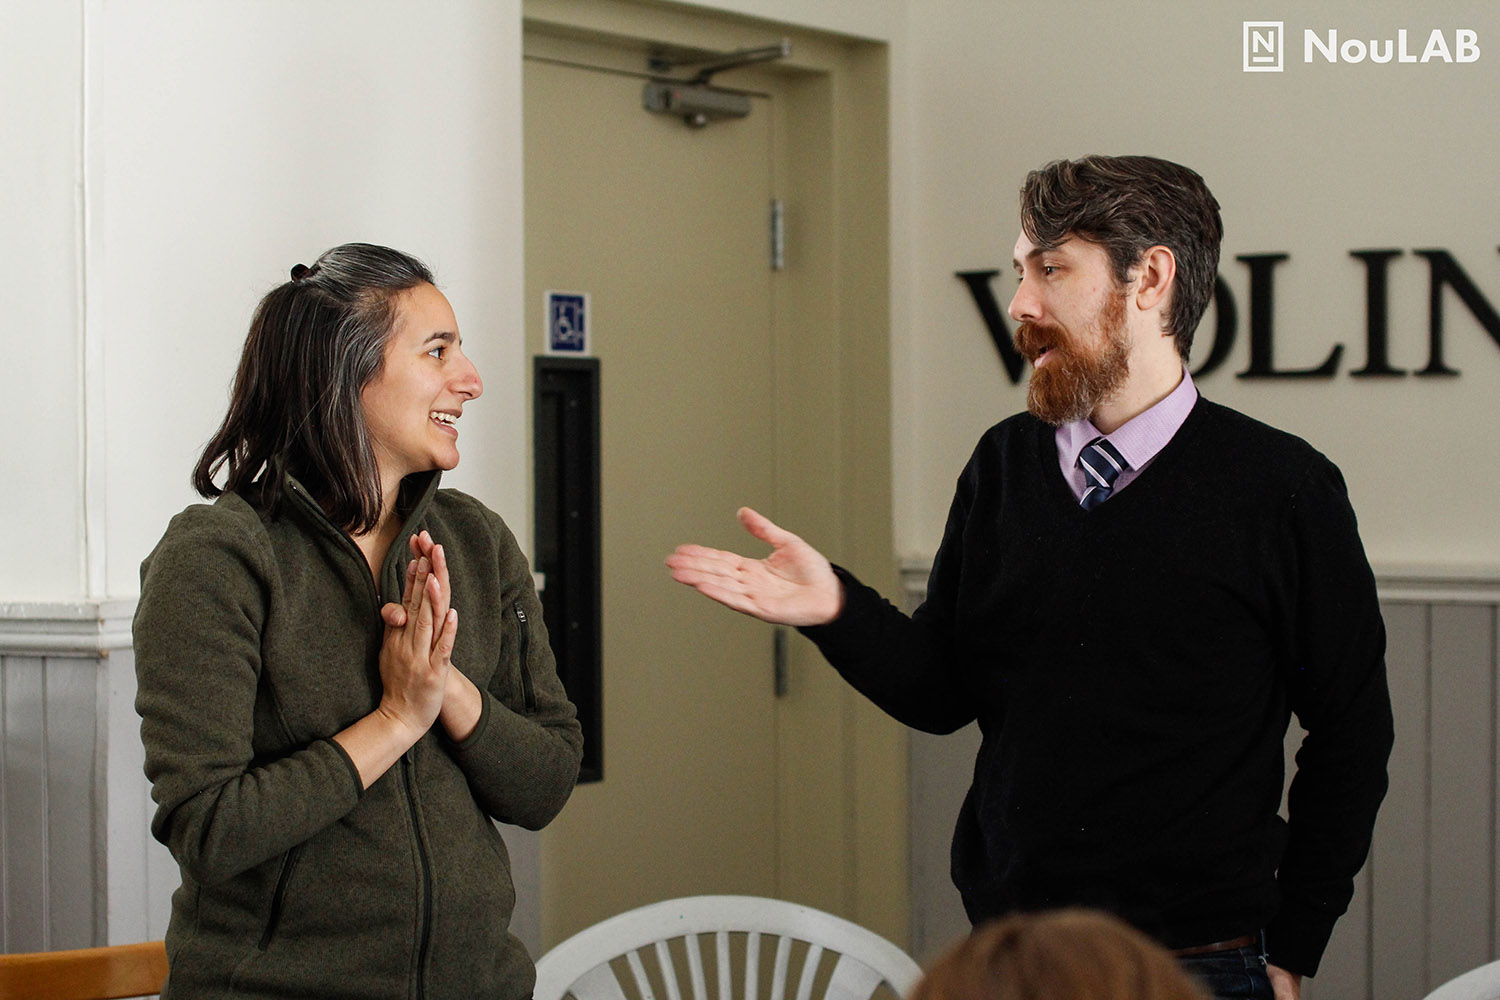 Bethany Deshpande and Nic Clement role play a prototype for resolving a conflict of interest.